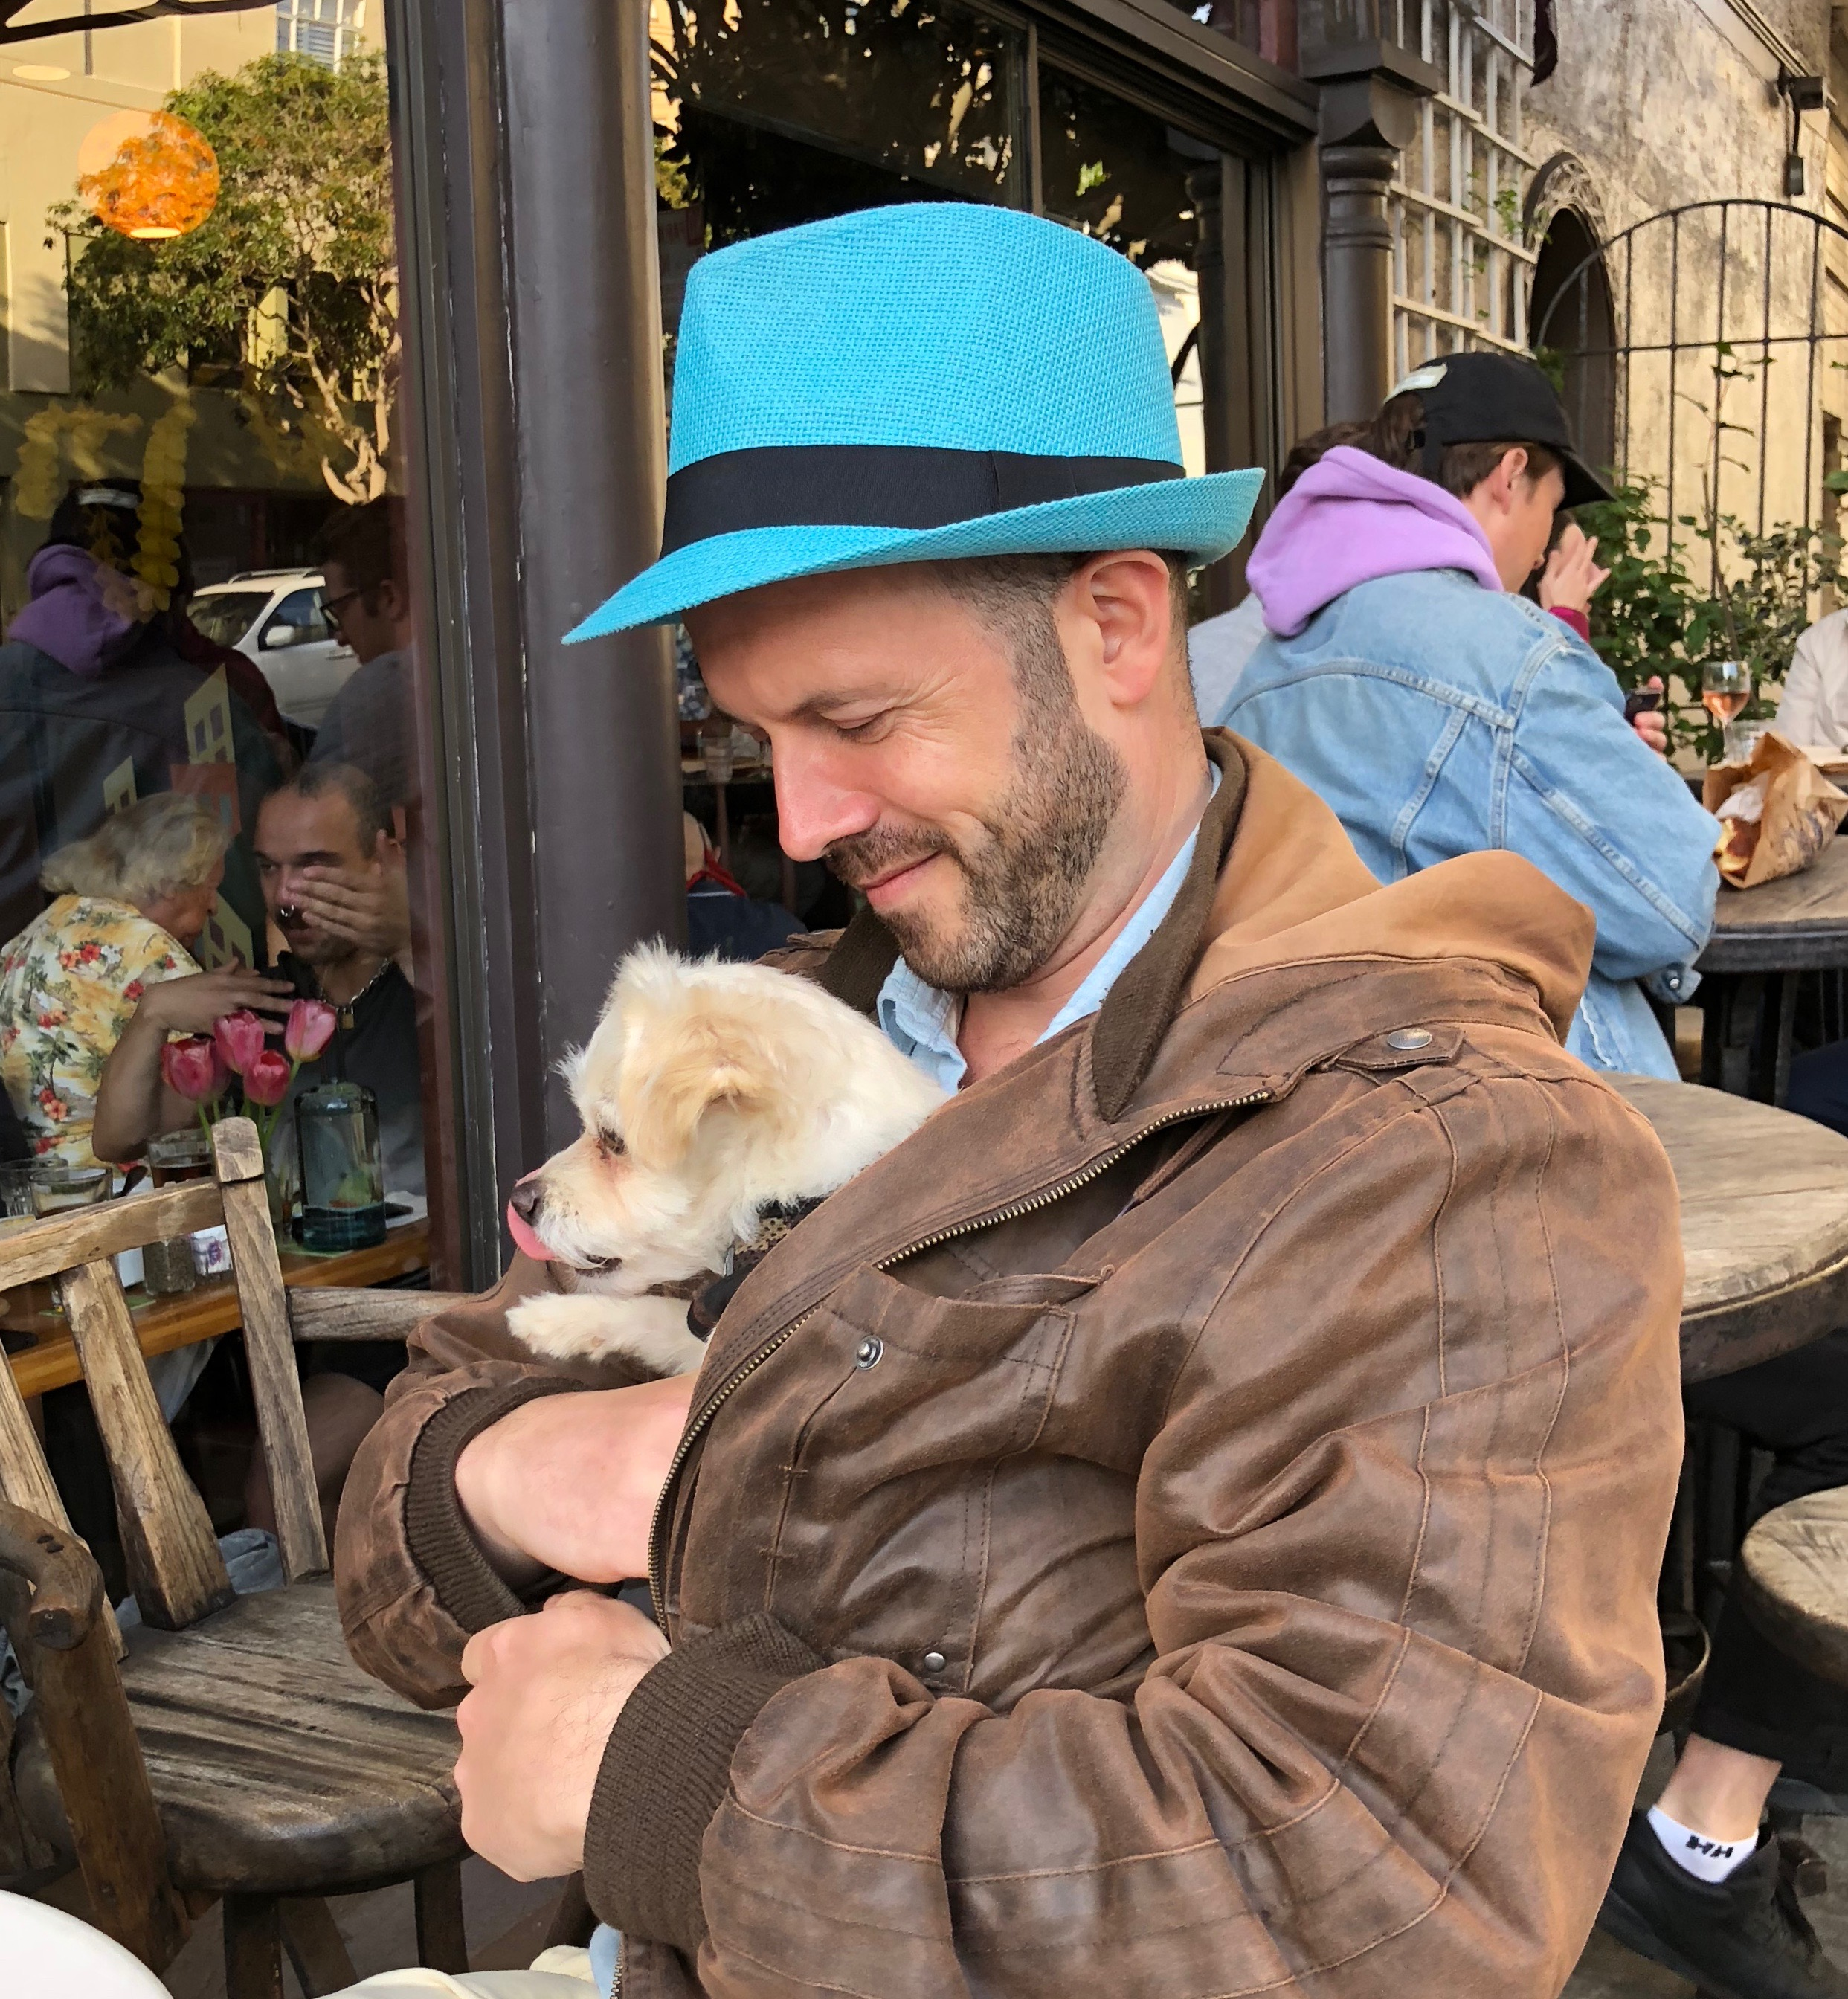 Man With Chihuahua Terrier Mix Cuddled In His Bomber Jacket